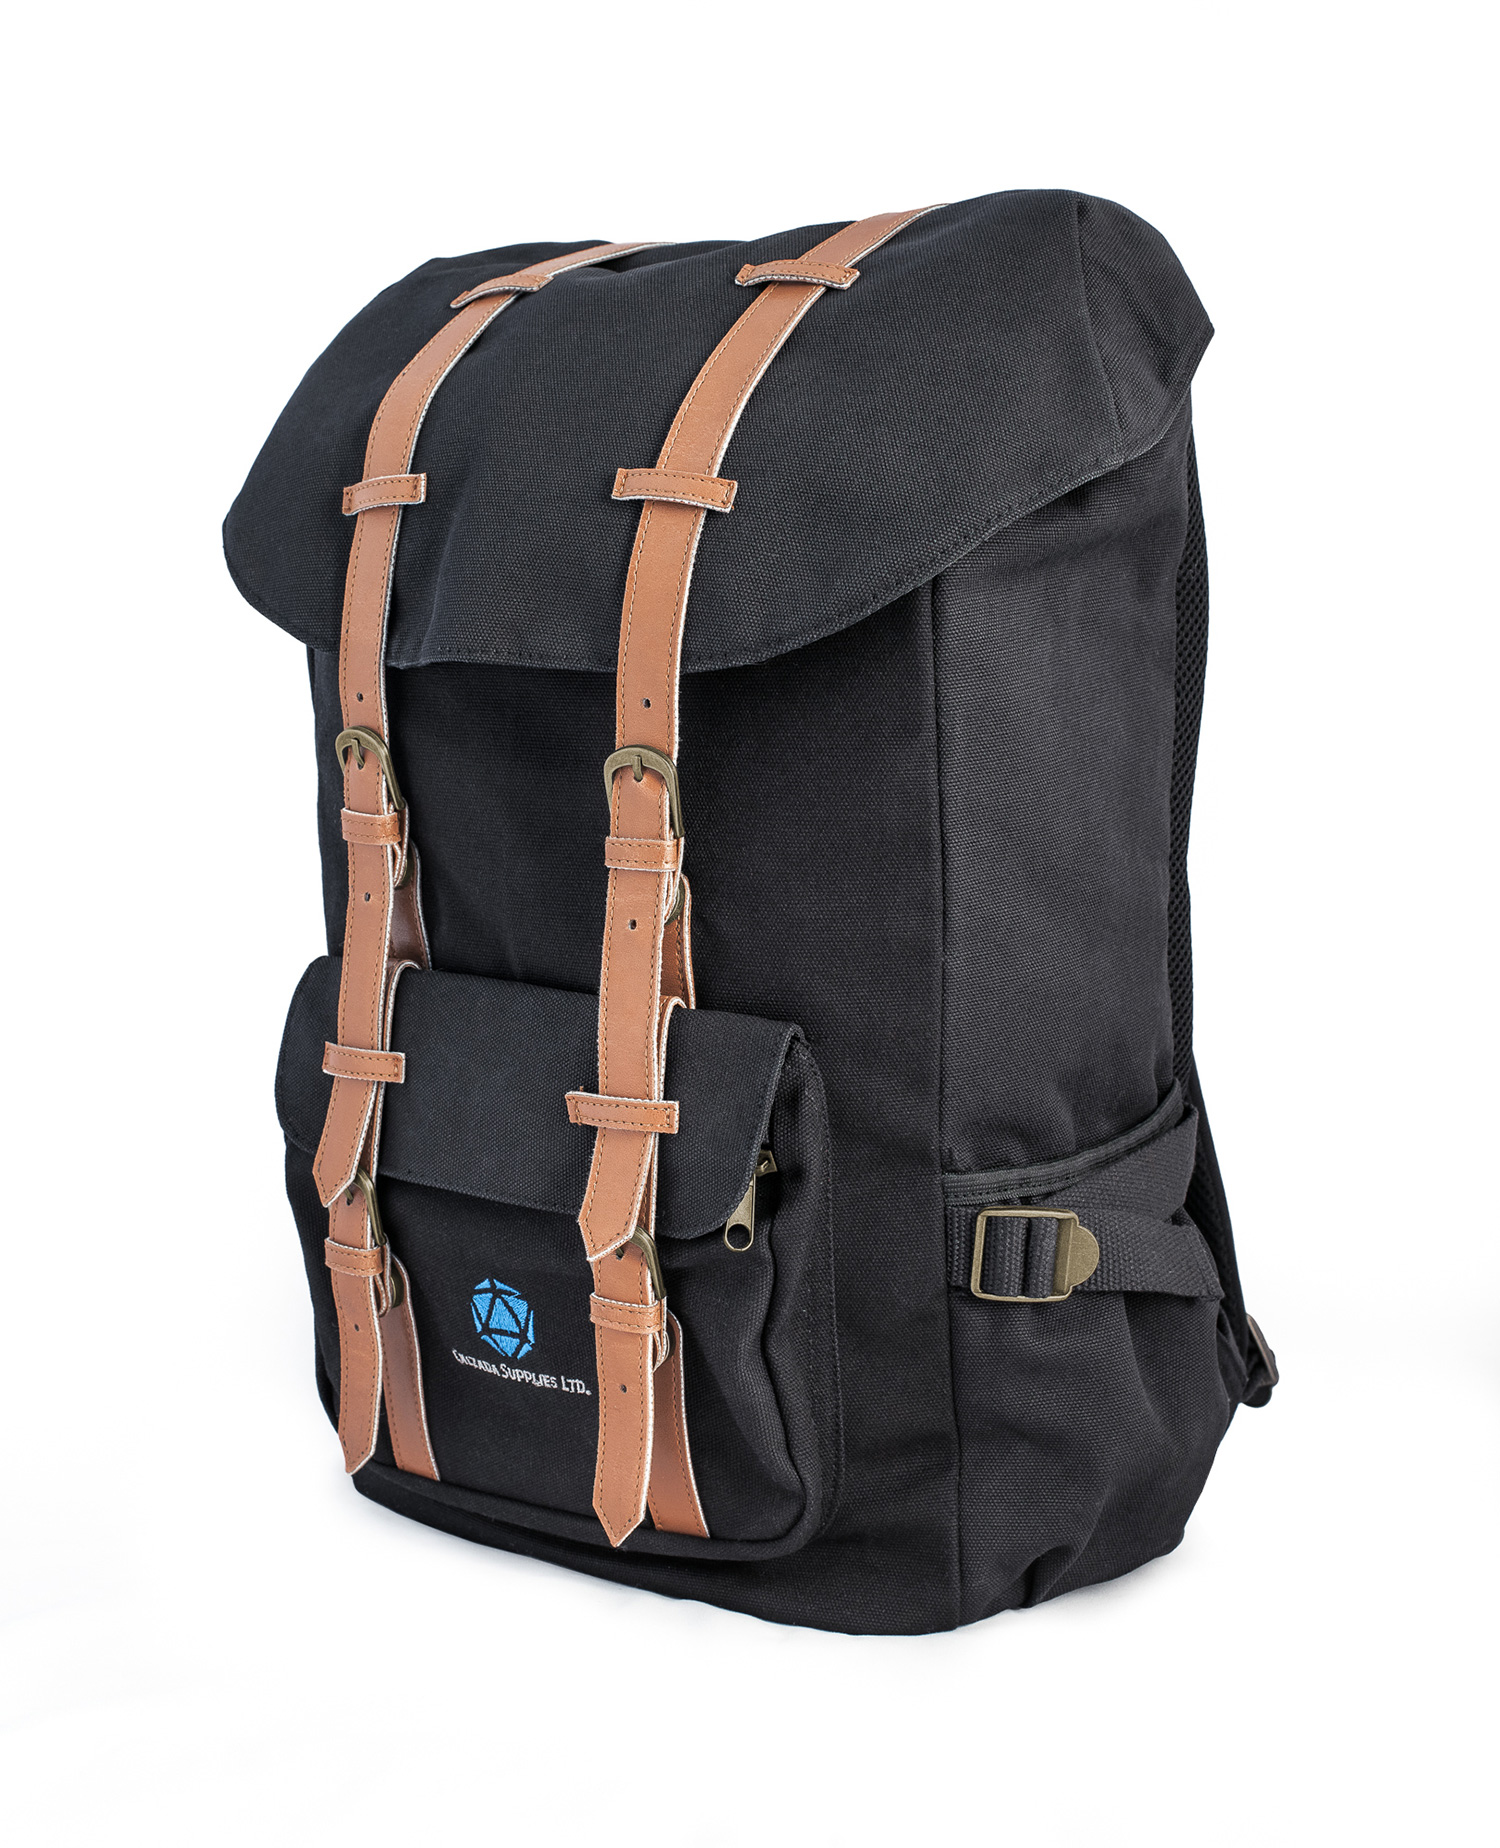 commercial-product-photography-calzada-supplies-backpack-1.jpg